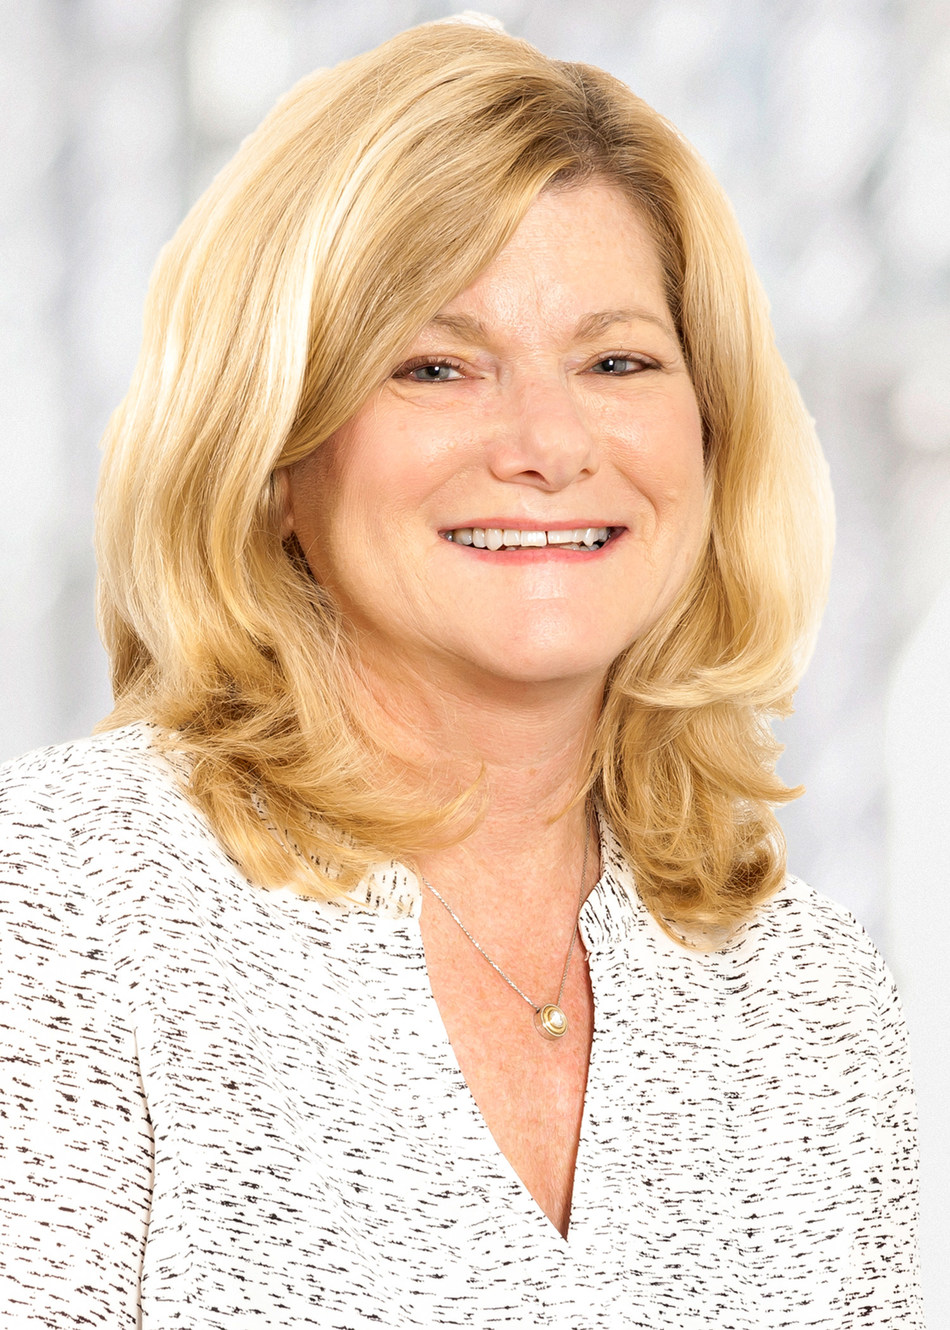 Vicki Bralow, D.O., a family practitioner in Philadelphia, Pa., joins the MDVIP network to deliver personalized primary care.